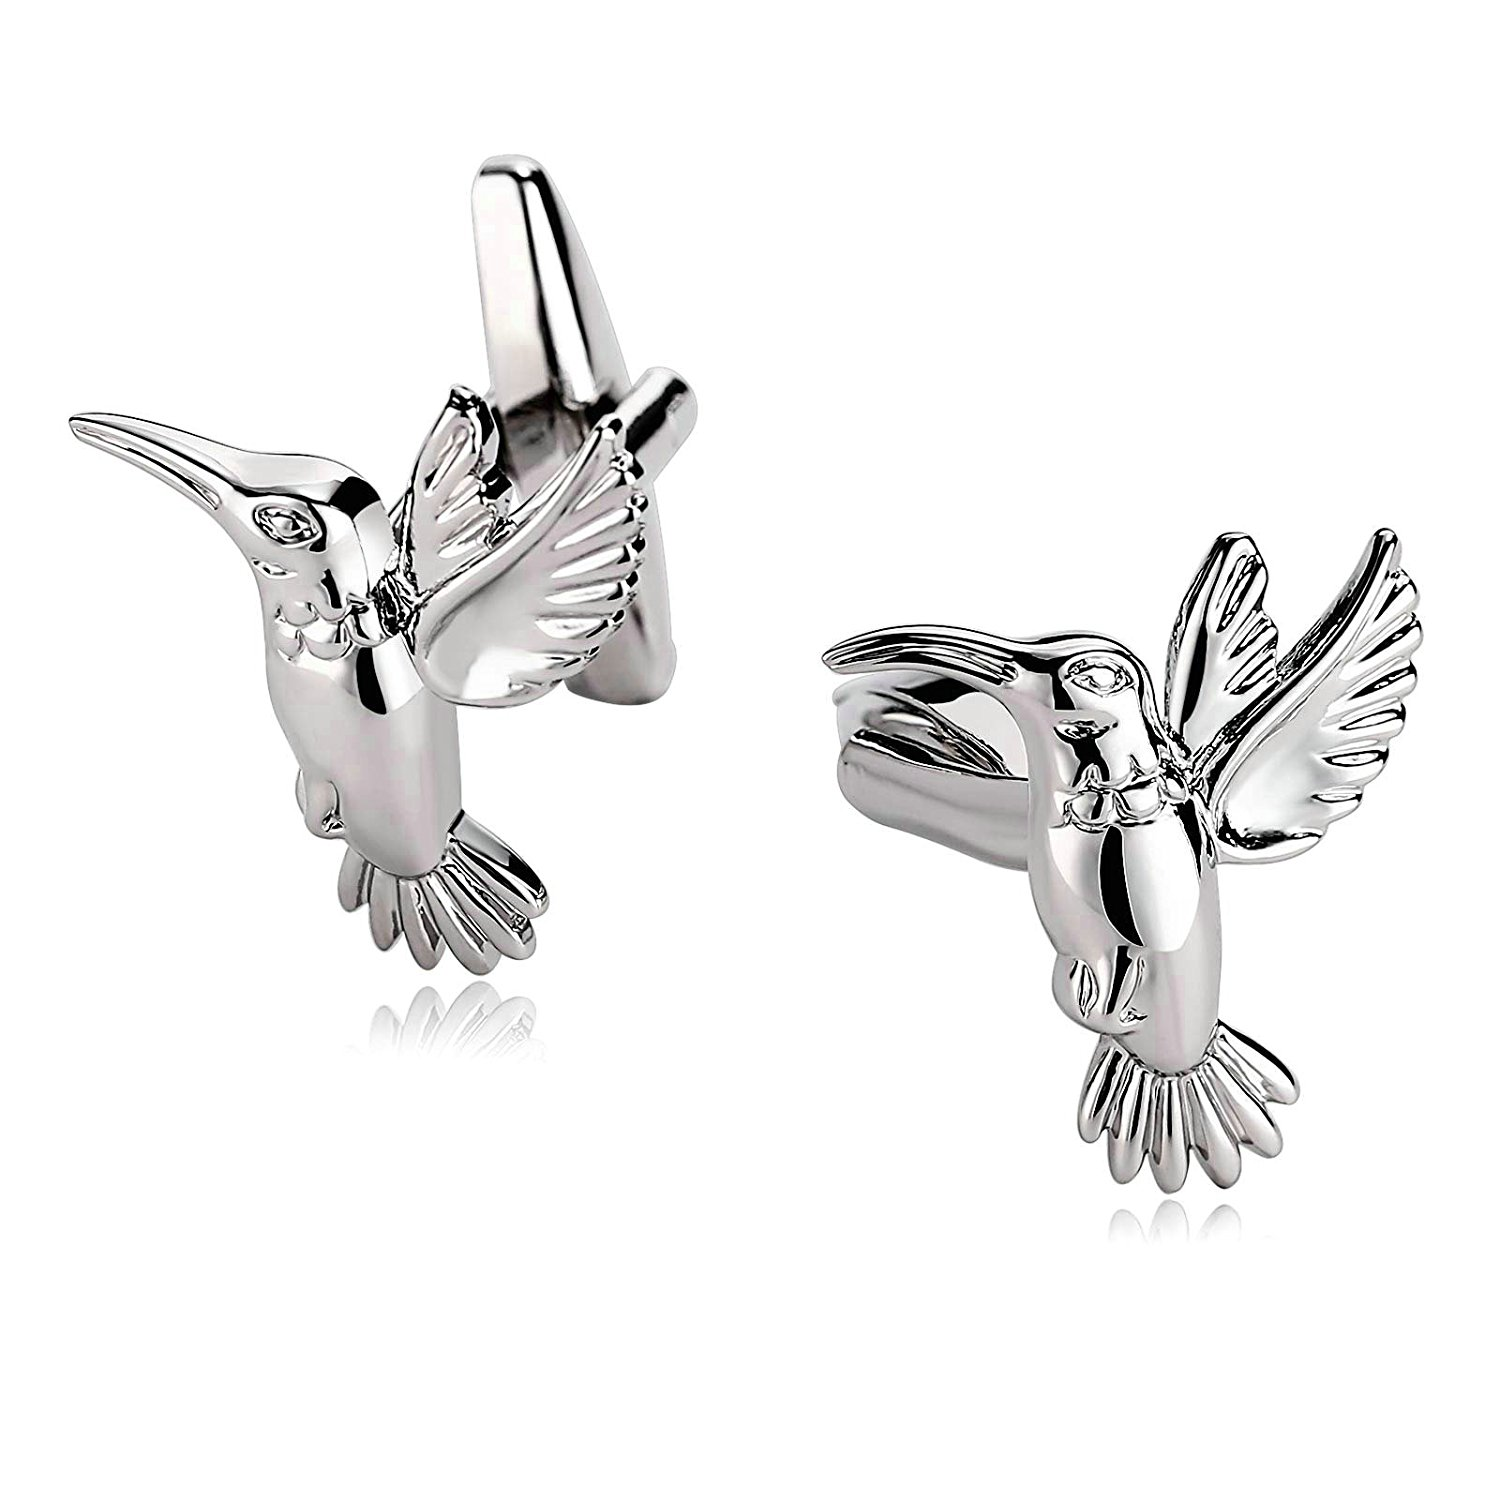 5 Styles Mens Stainless Steel Cufflinks 2Pcs, Novelty Cufflinks, Dad Unique Jewelry Box Charm Aooaz Mh81